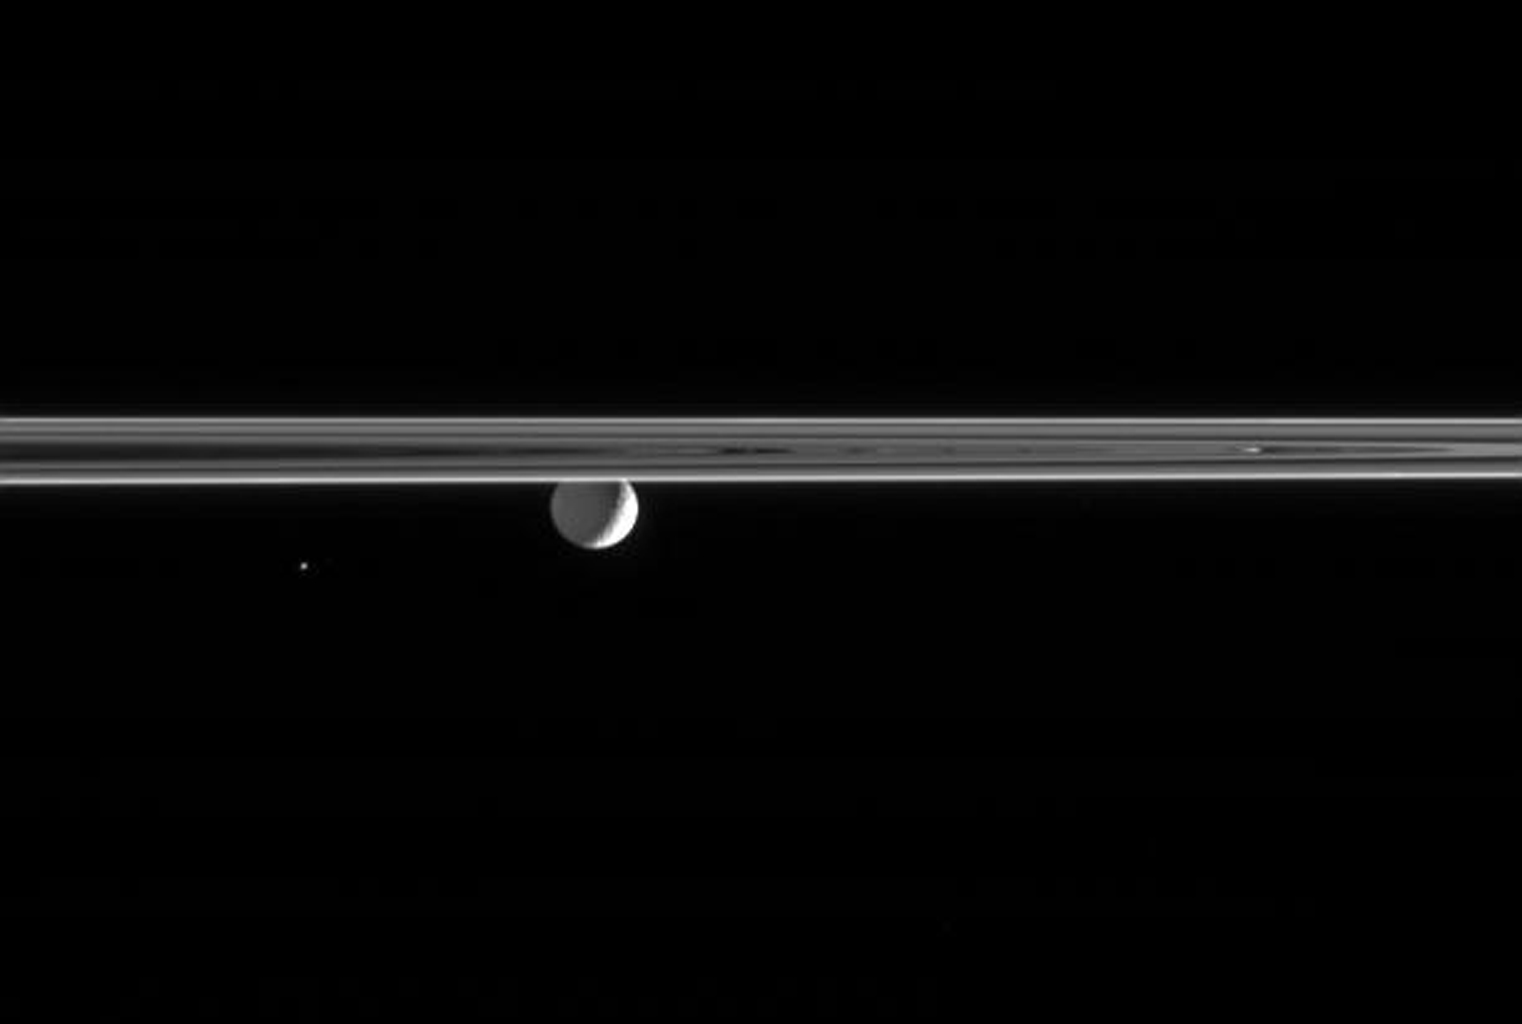 Gazing across the ringplane, NASA's Cassini spacecraft spots a Saturn-lit Mimas and the tiny Trojan moon Helene. Only the bright crescent on Mimas' eastern limb is lit by the Sun; the moon's night side is illuminated by Saturnshine.